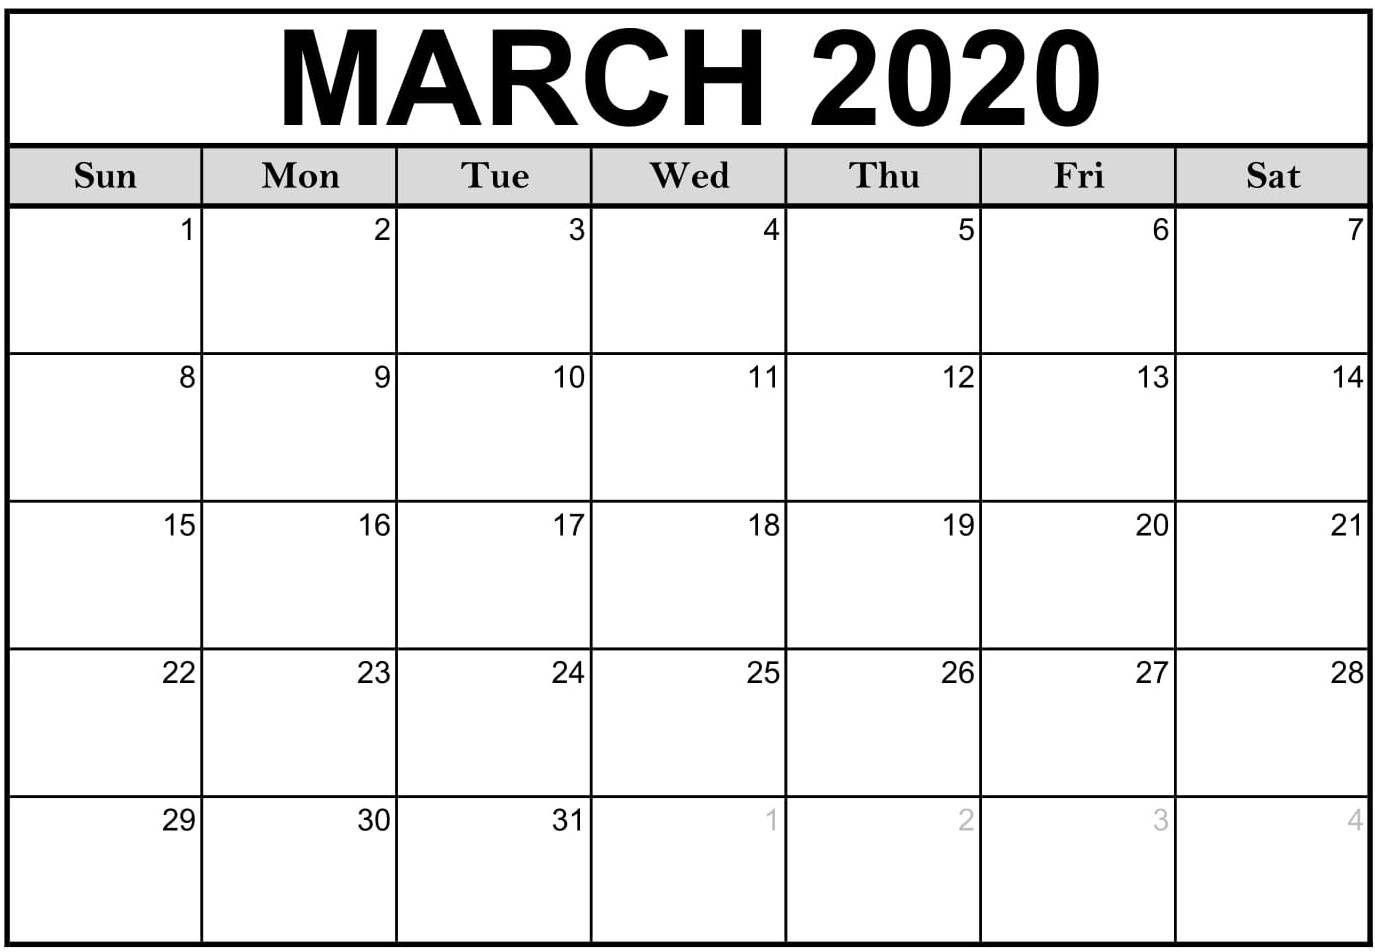 Download Fillable March 2020 Calendar Pdf Word A4 Excel  Free Printable Monthly Calendar March 2020